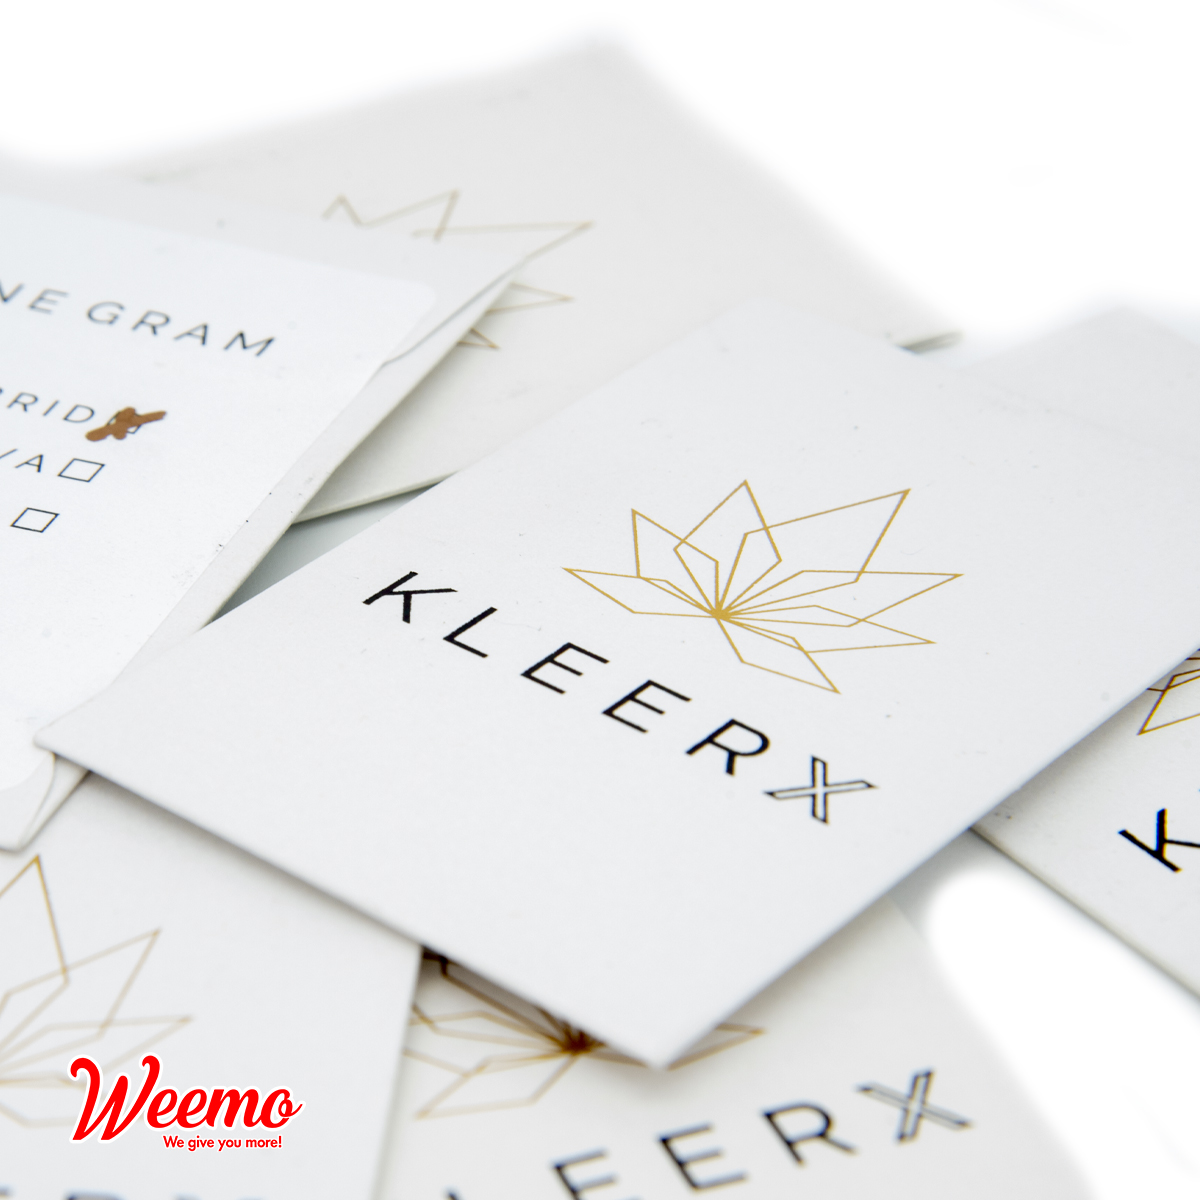 Kleerx Shatter by Weemo - Image © 2020 Weemo. All Rights Reserved.